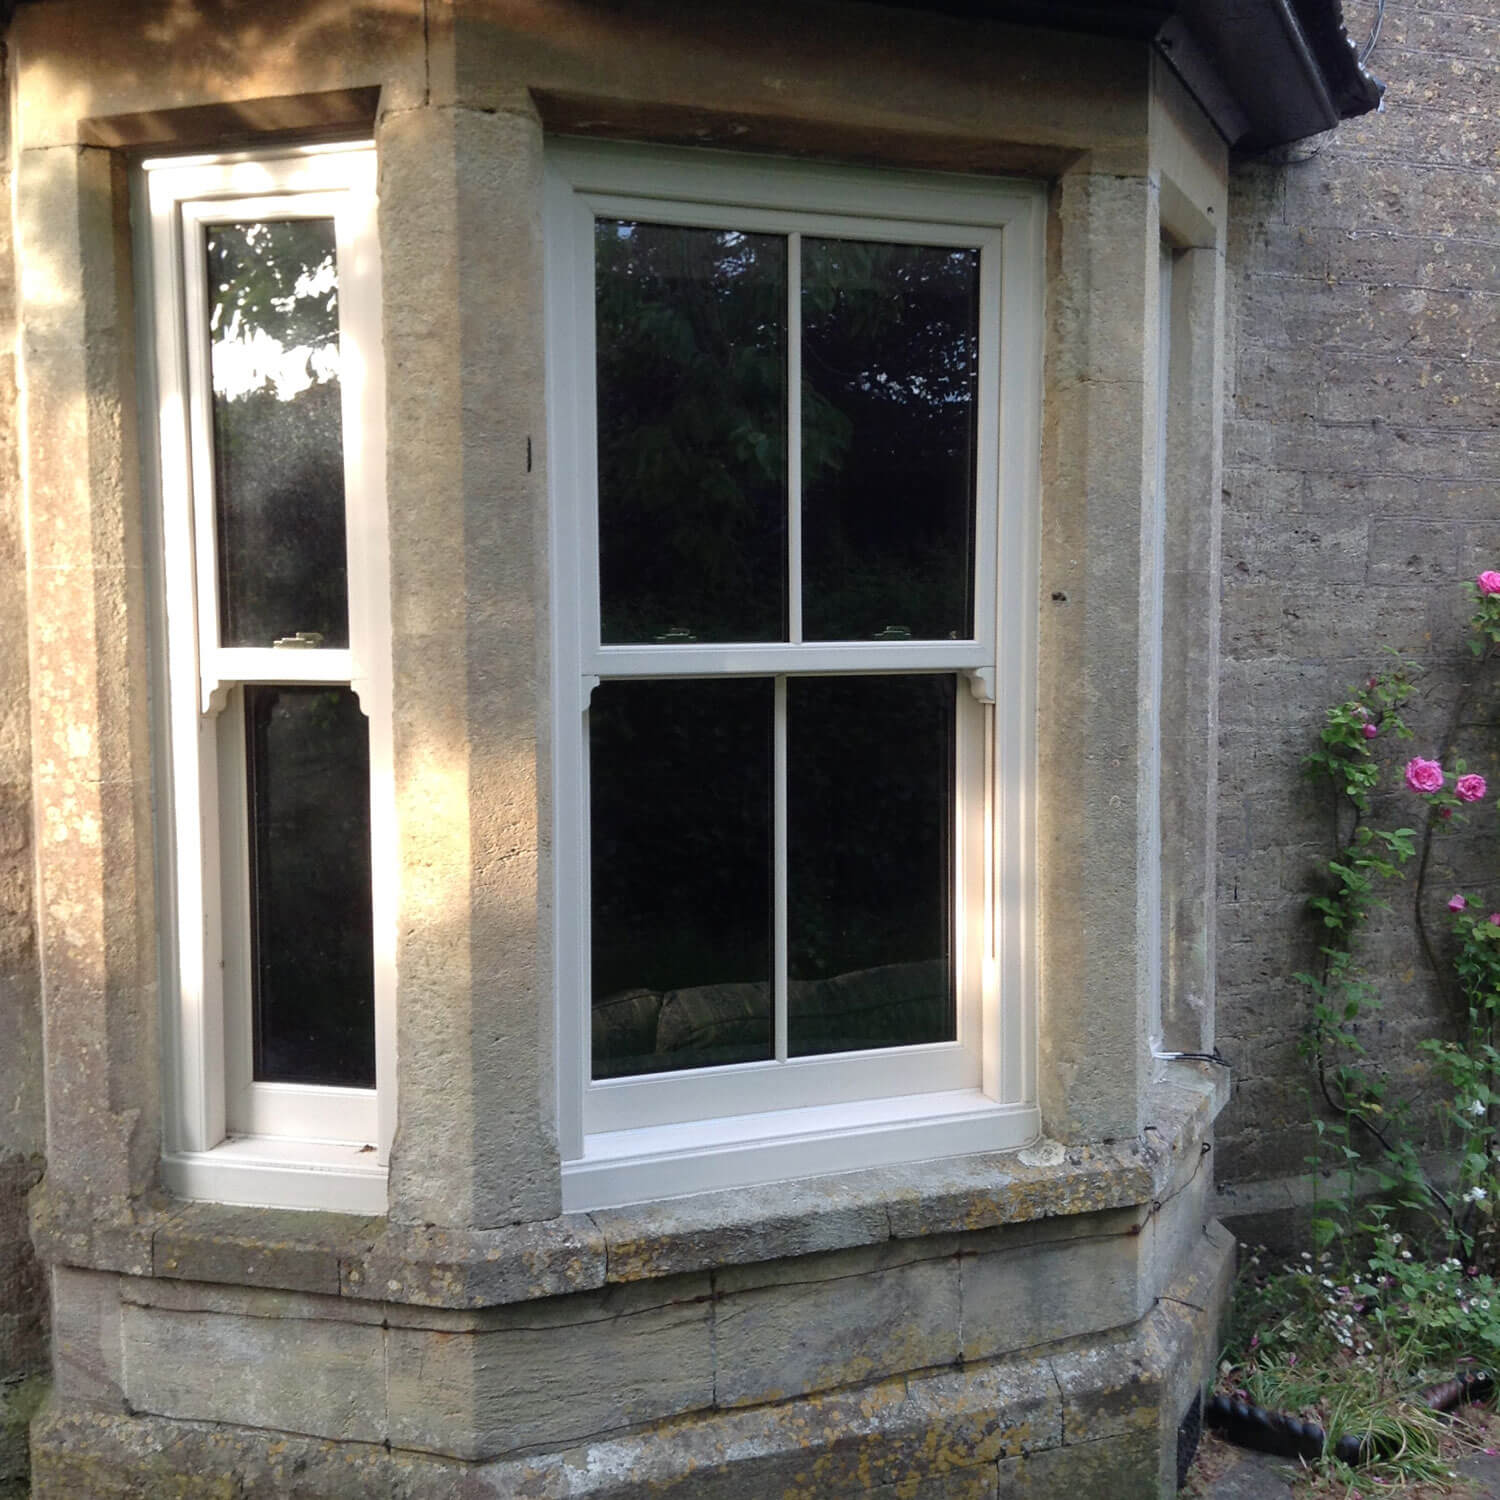 Window Sash Replacement Groes-faen